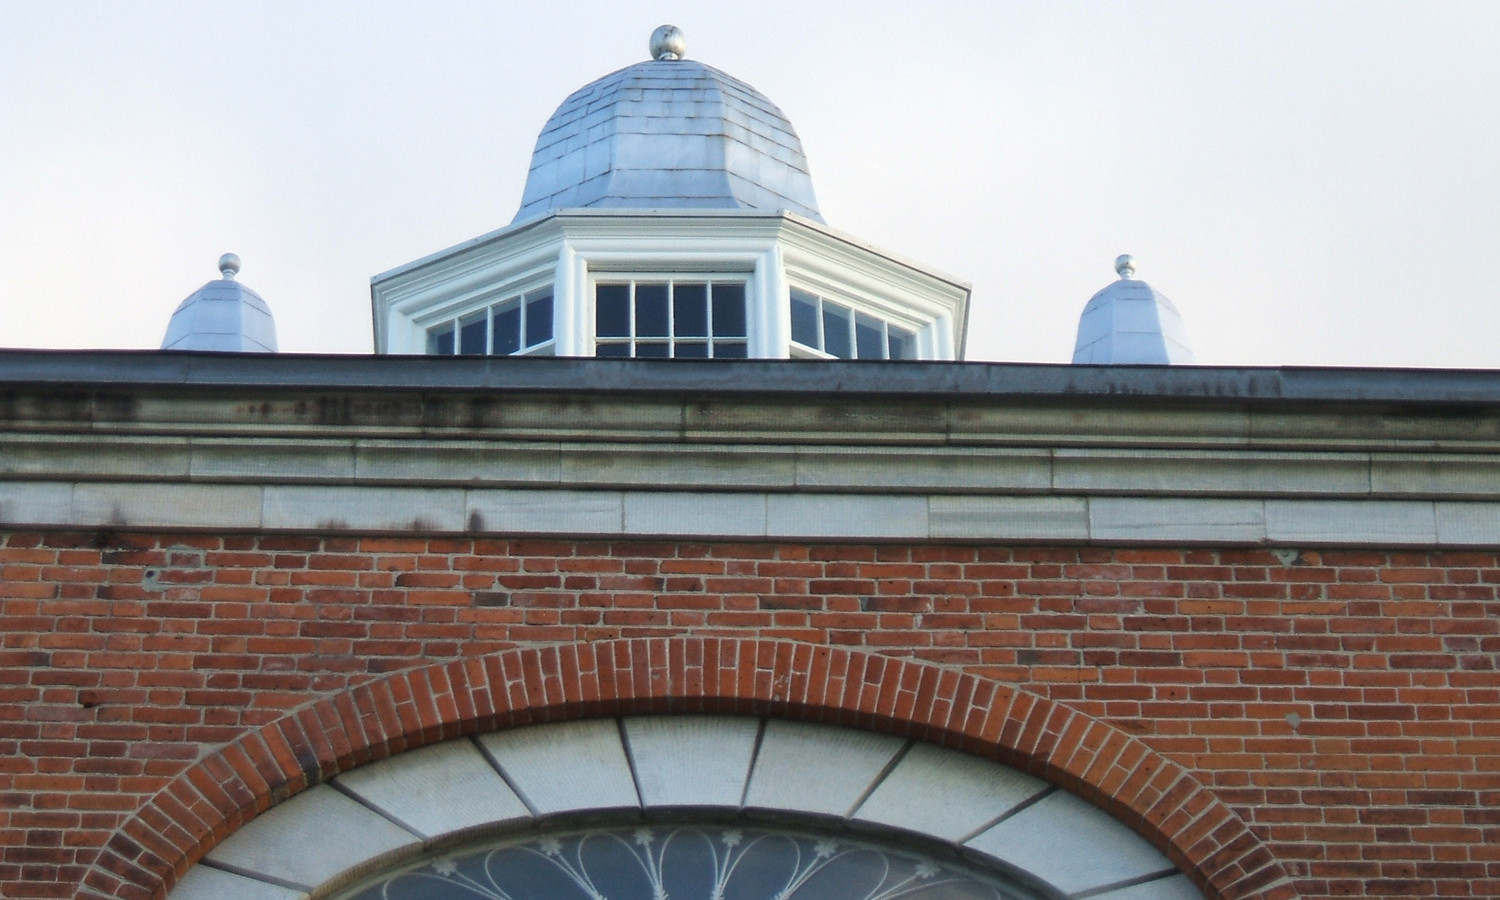 Detail of Original Fan Light and Cupolas